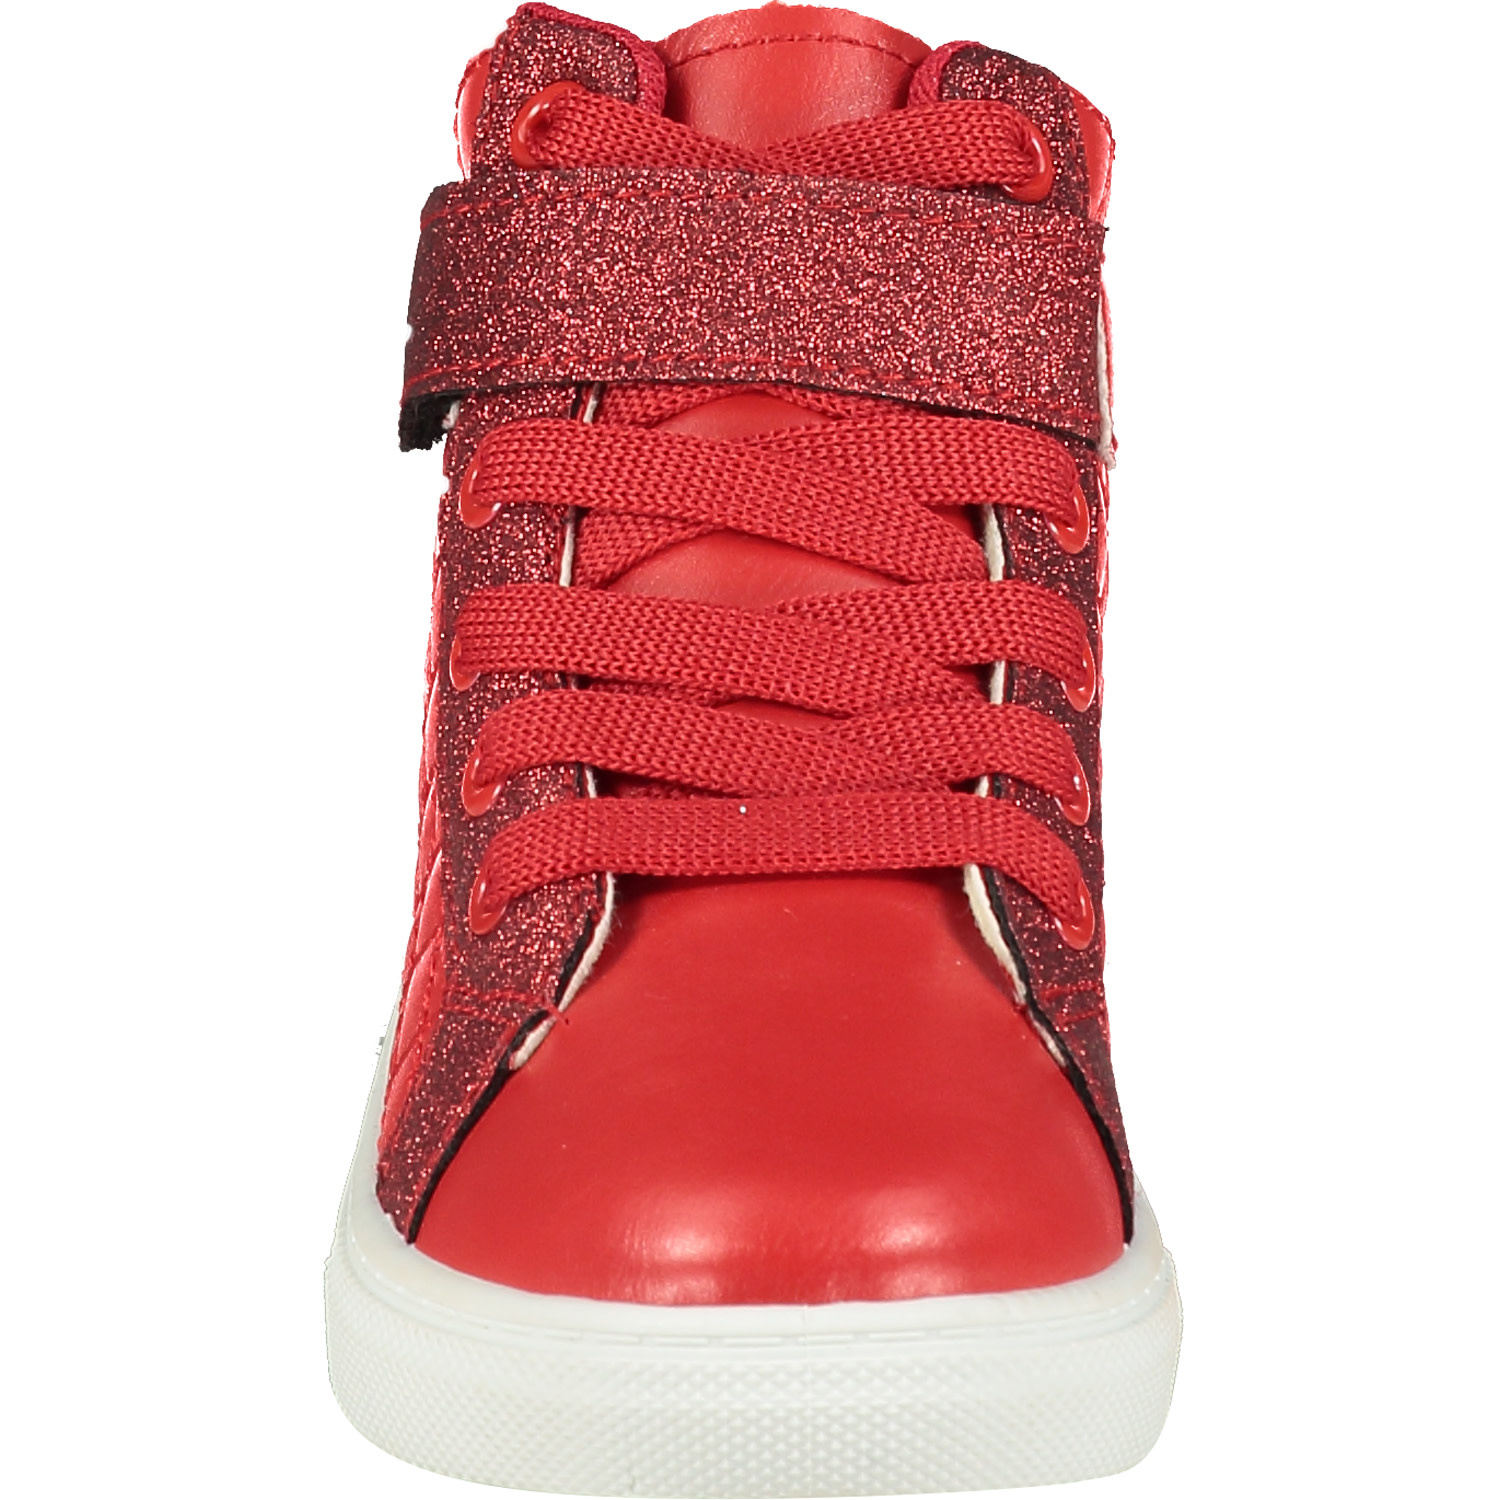 A Dee ADee Kriss Kross Red Quilted High Top Trainer